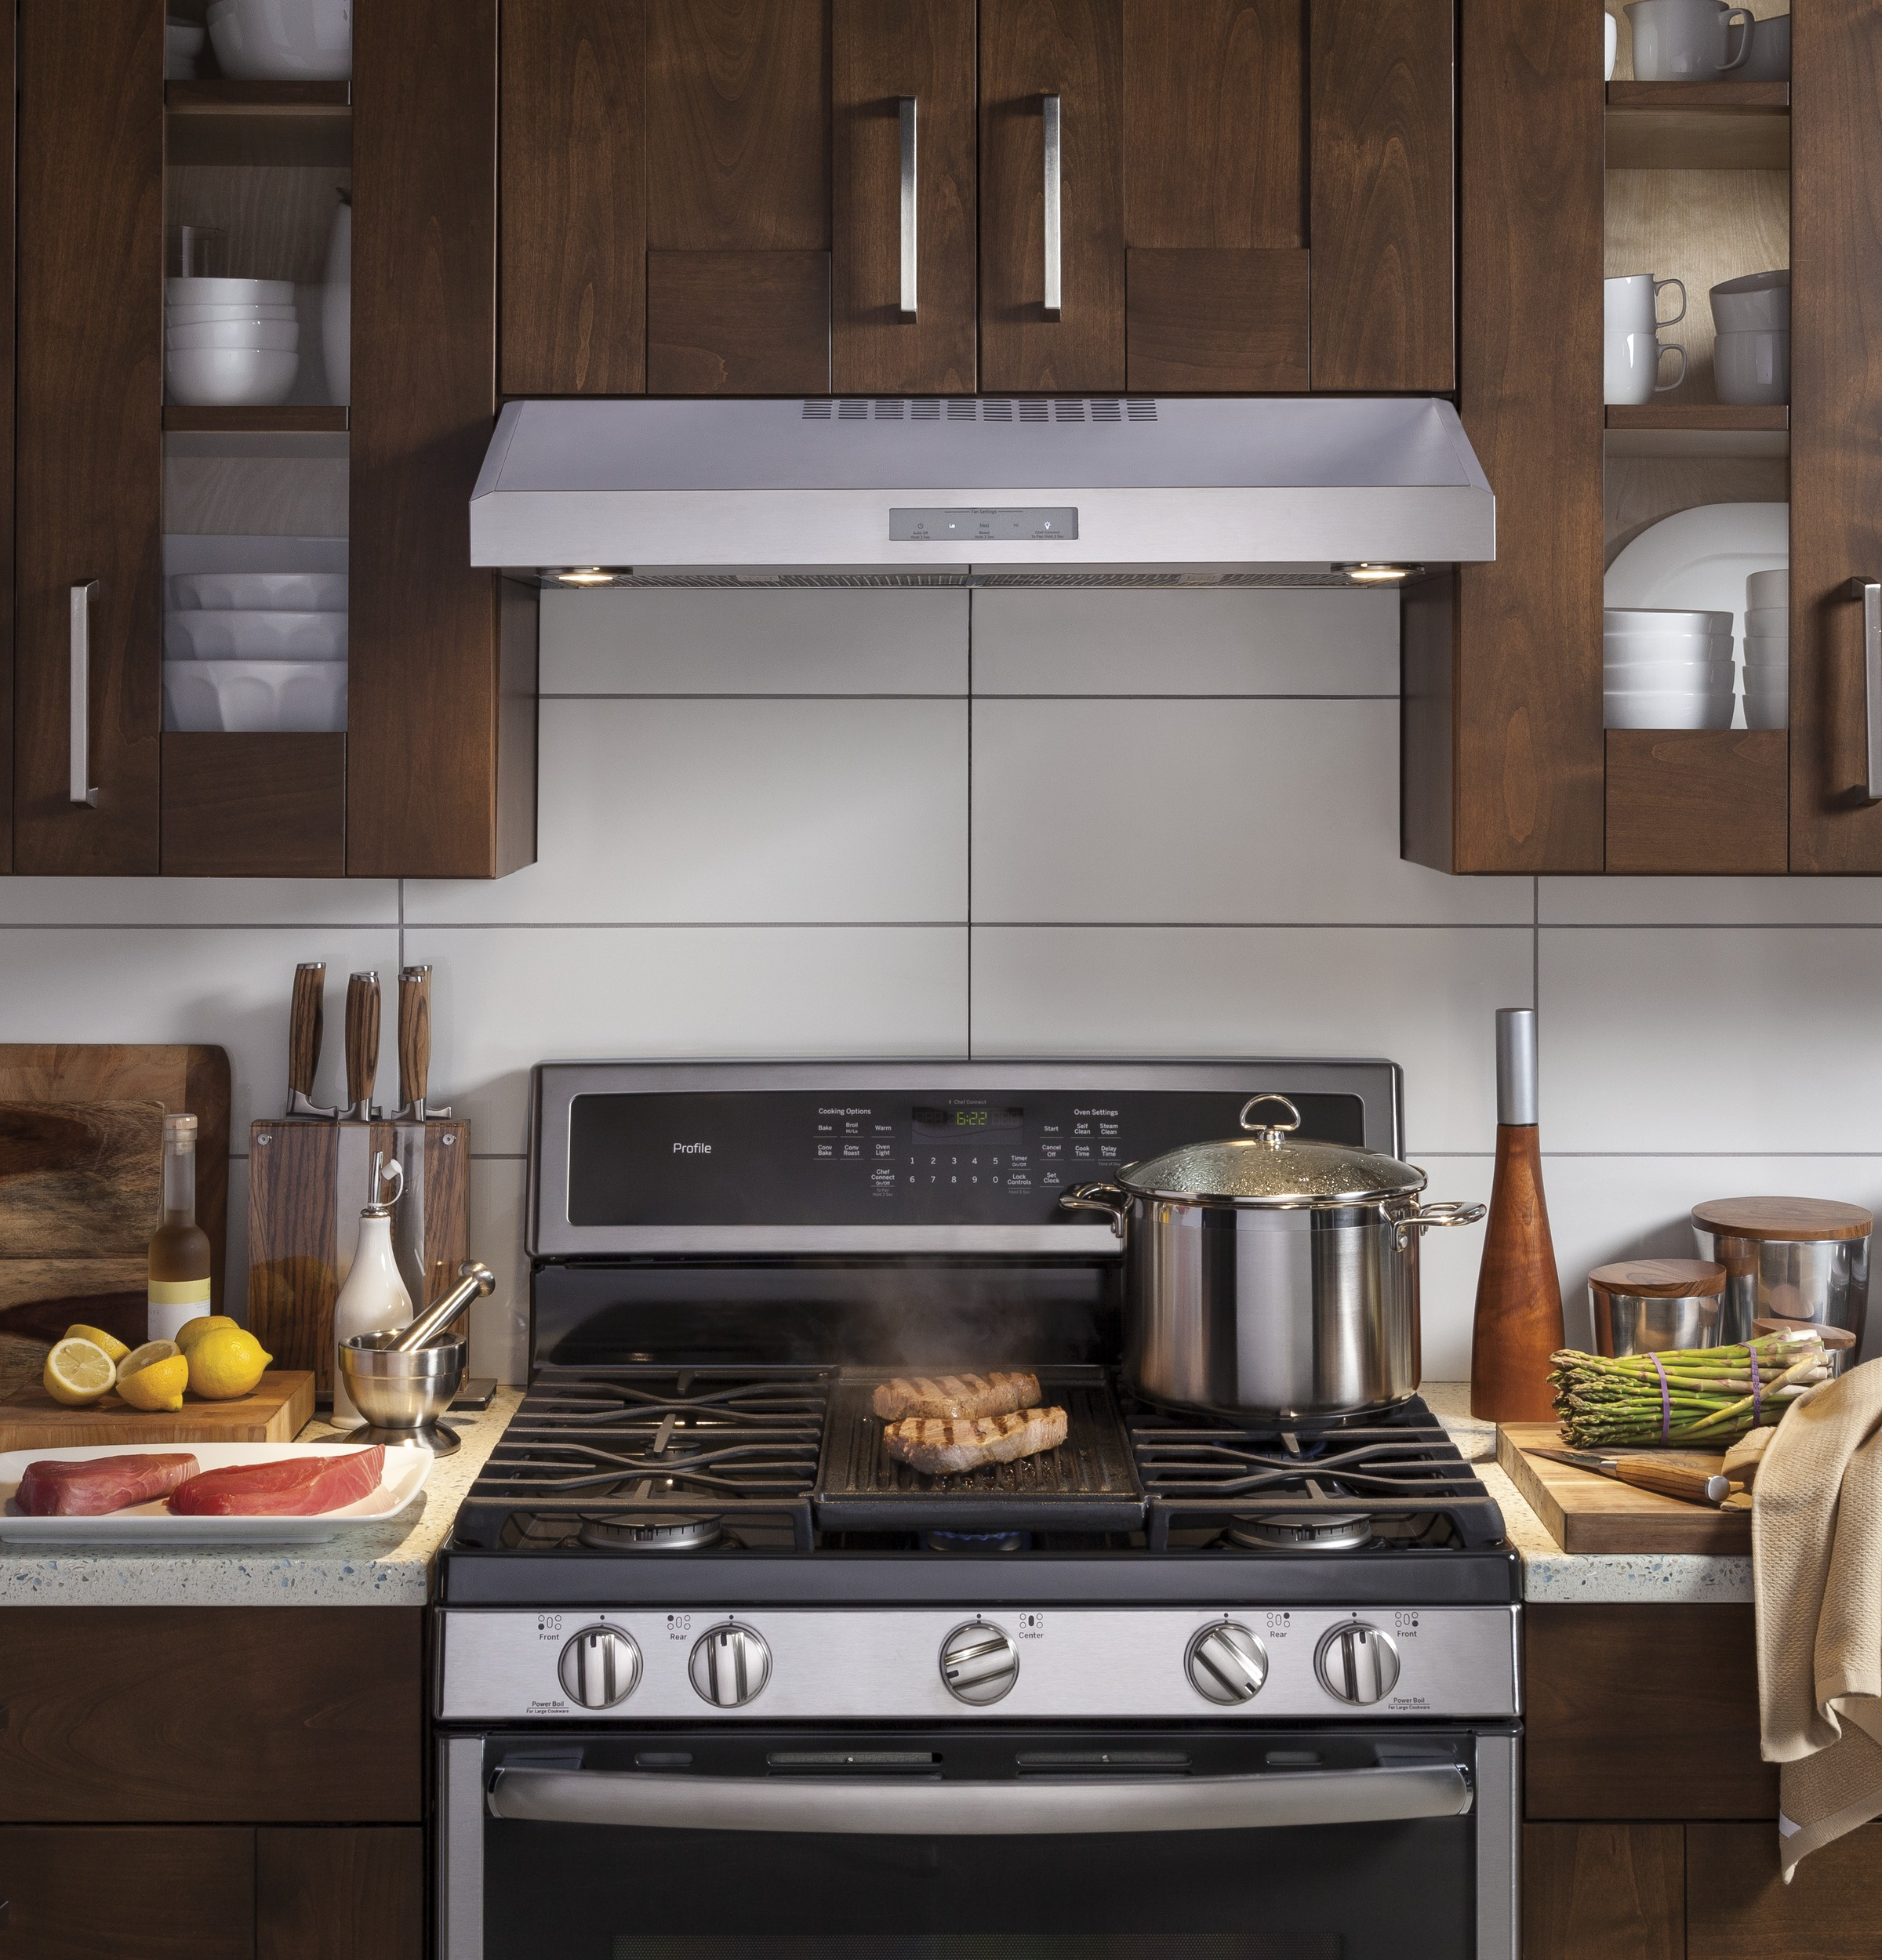 How to Prep for the Holidays With GE Appliances at Best Buy